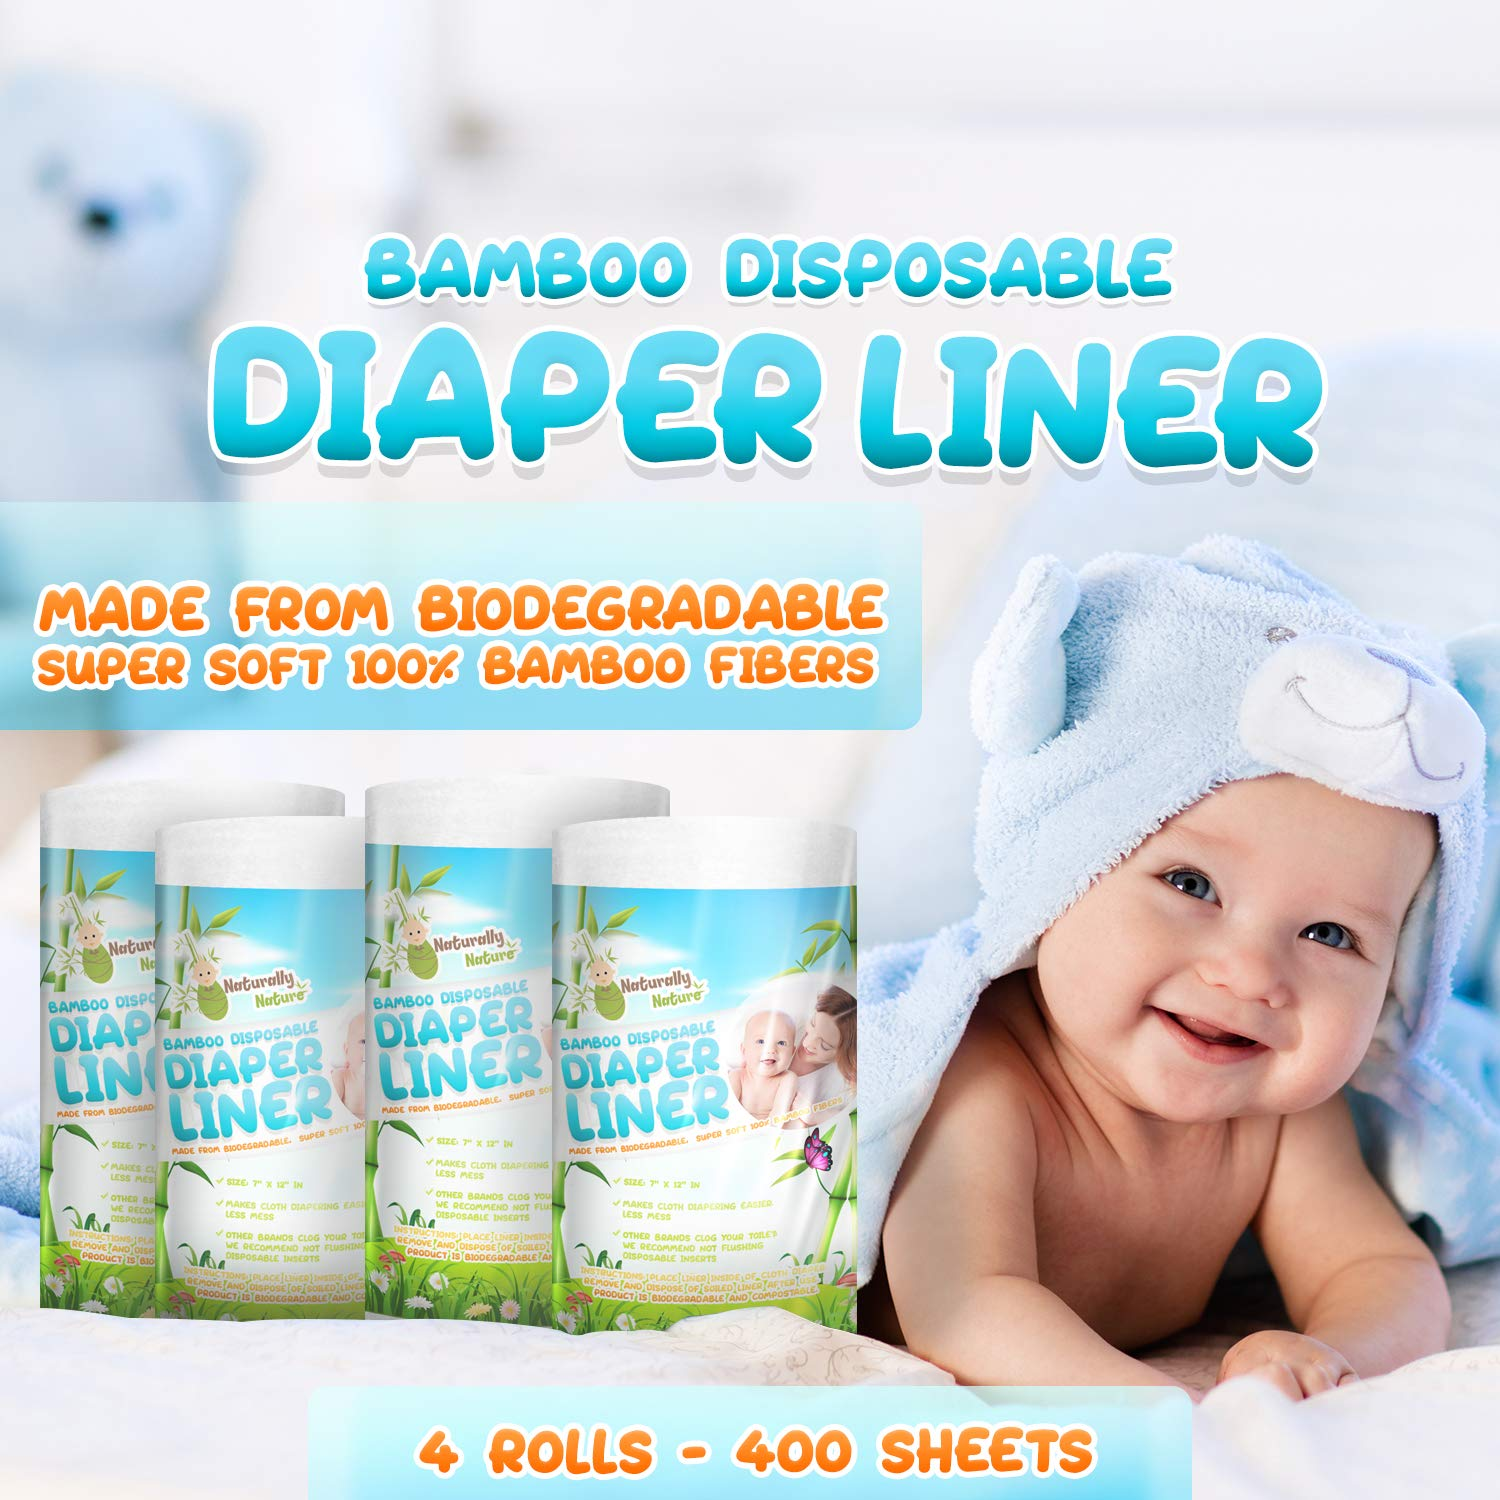 100 Sheets//Roll PRENKIN Disposable Nappy Natural Bamboo Disposable Bamboo Fiber Diaper Liners Infant Baby Eco-friendly Soft Cloth Nappy Insert